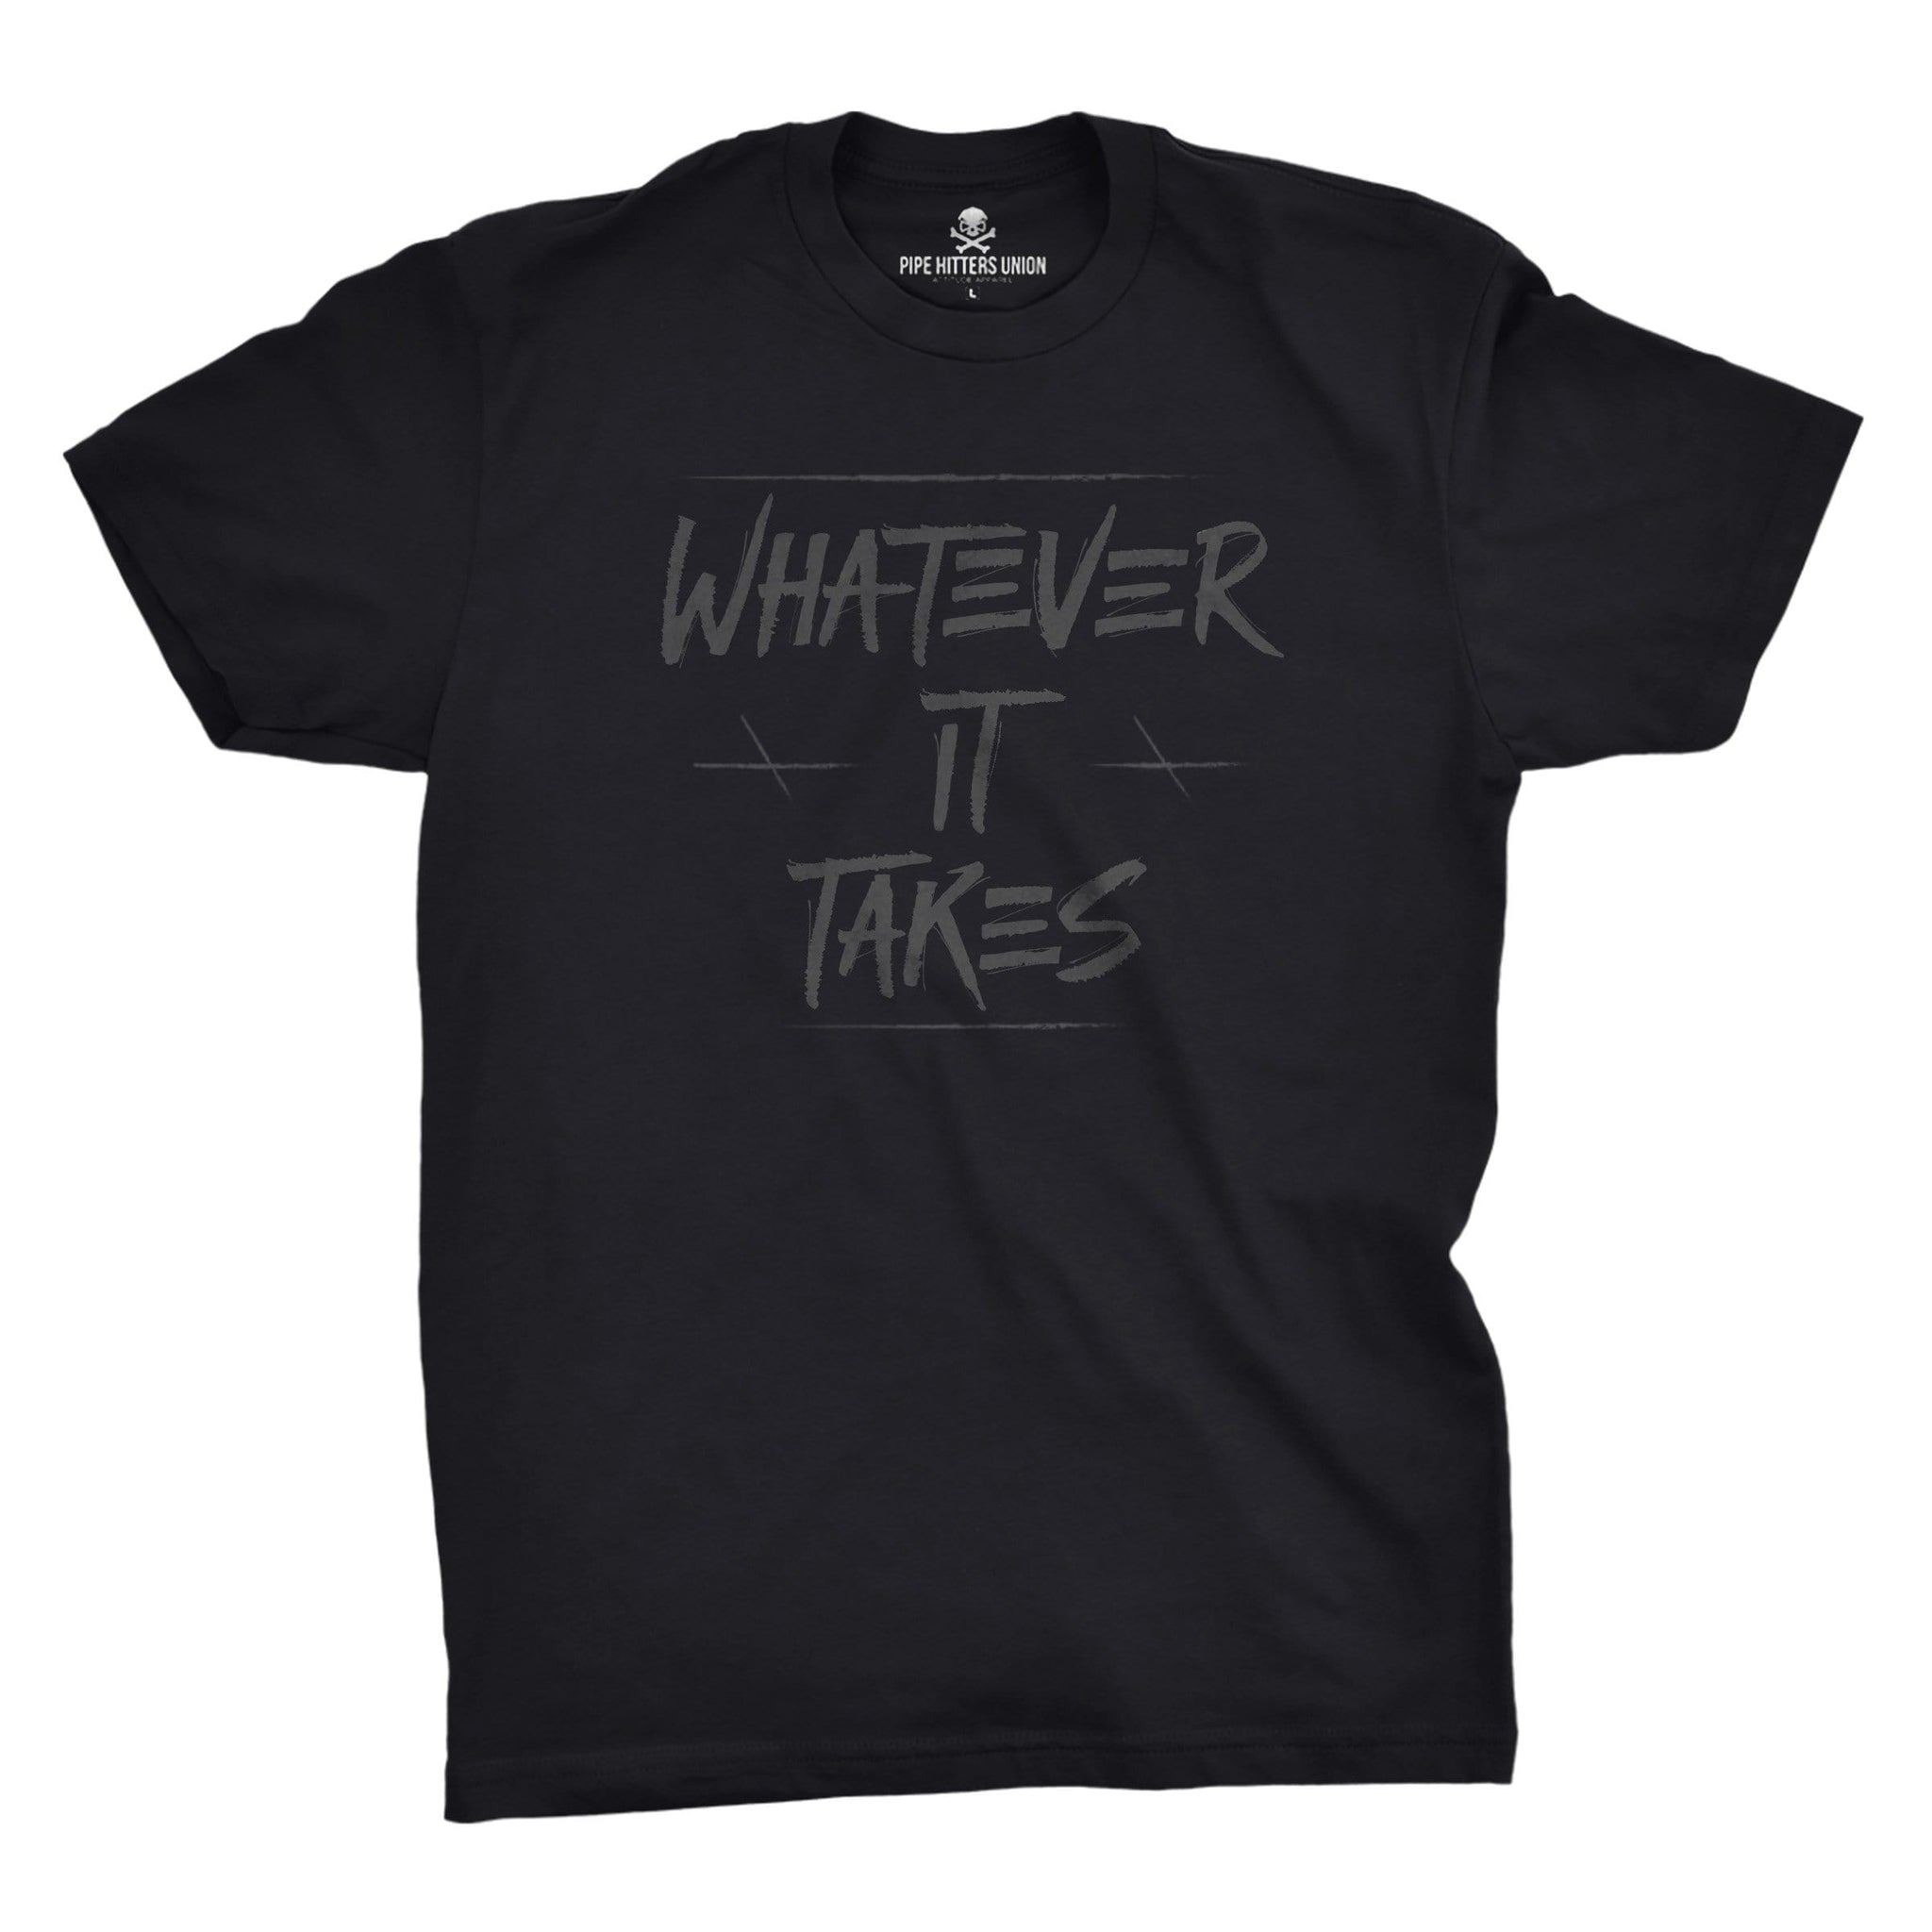 Whatever It Takes - Black/Grey - T-Shirts - Pipe Hitters Union